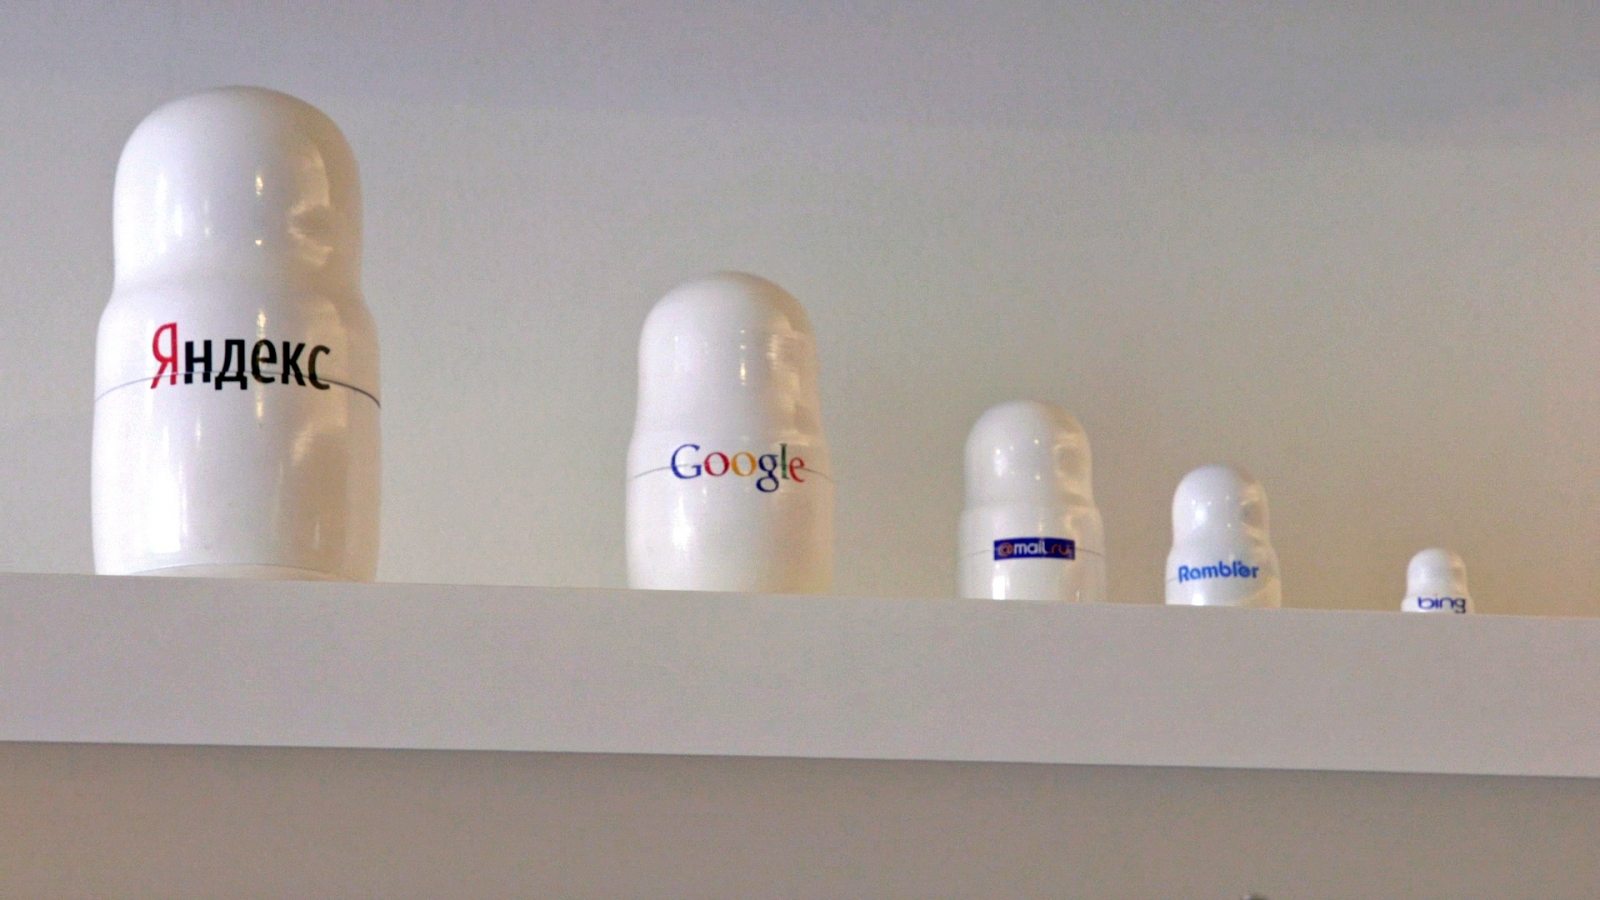 Search engine Russian dolls